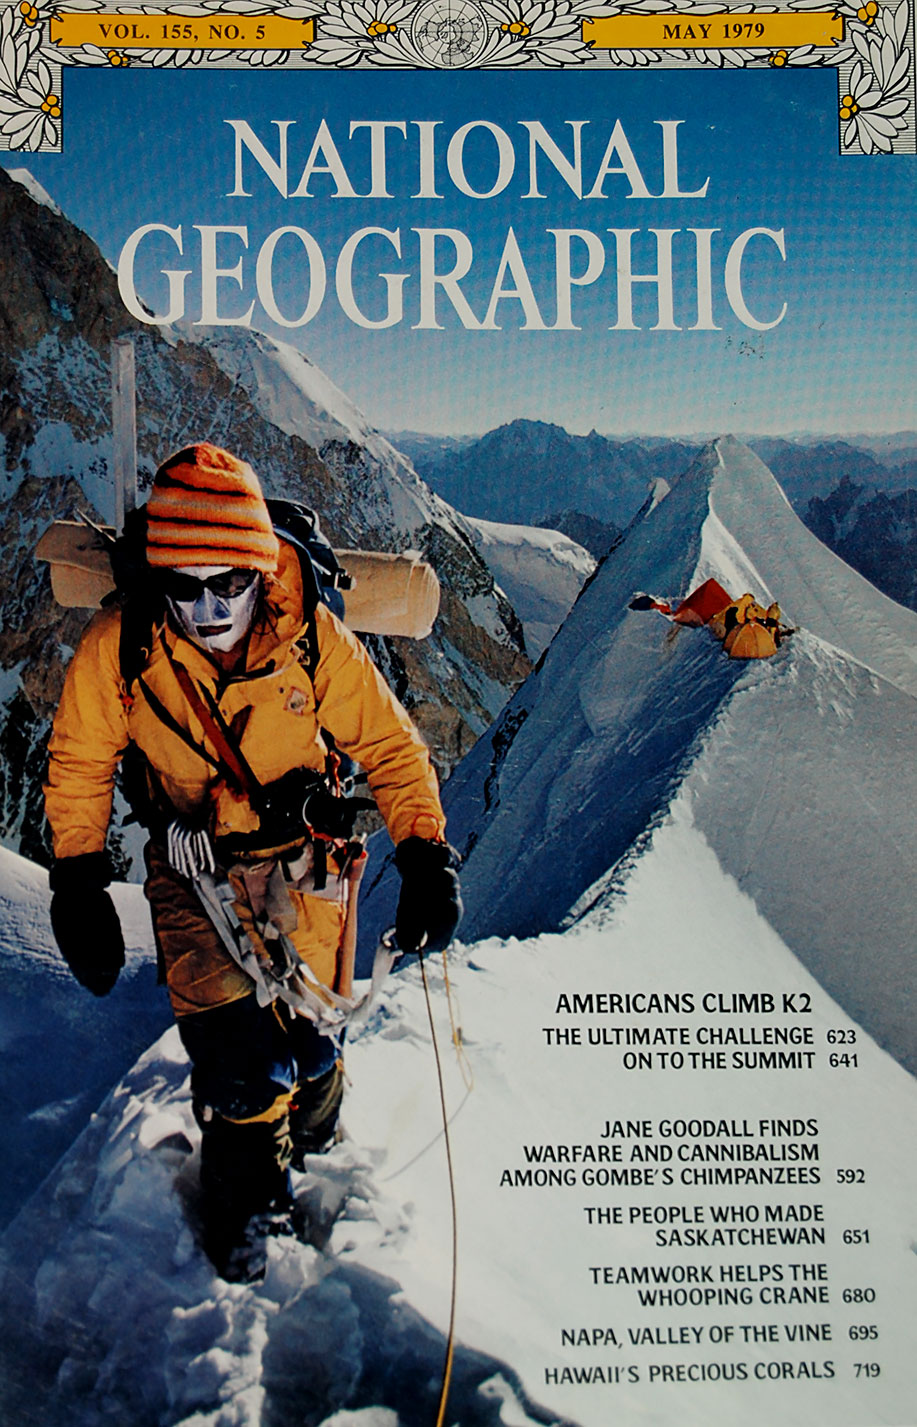 Rick on the cover of National Geographic, May 1979